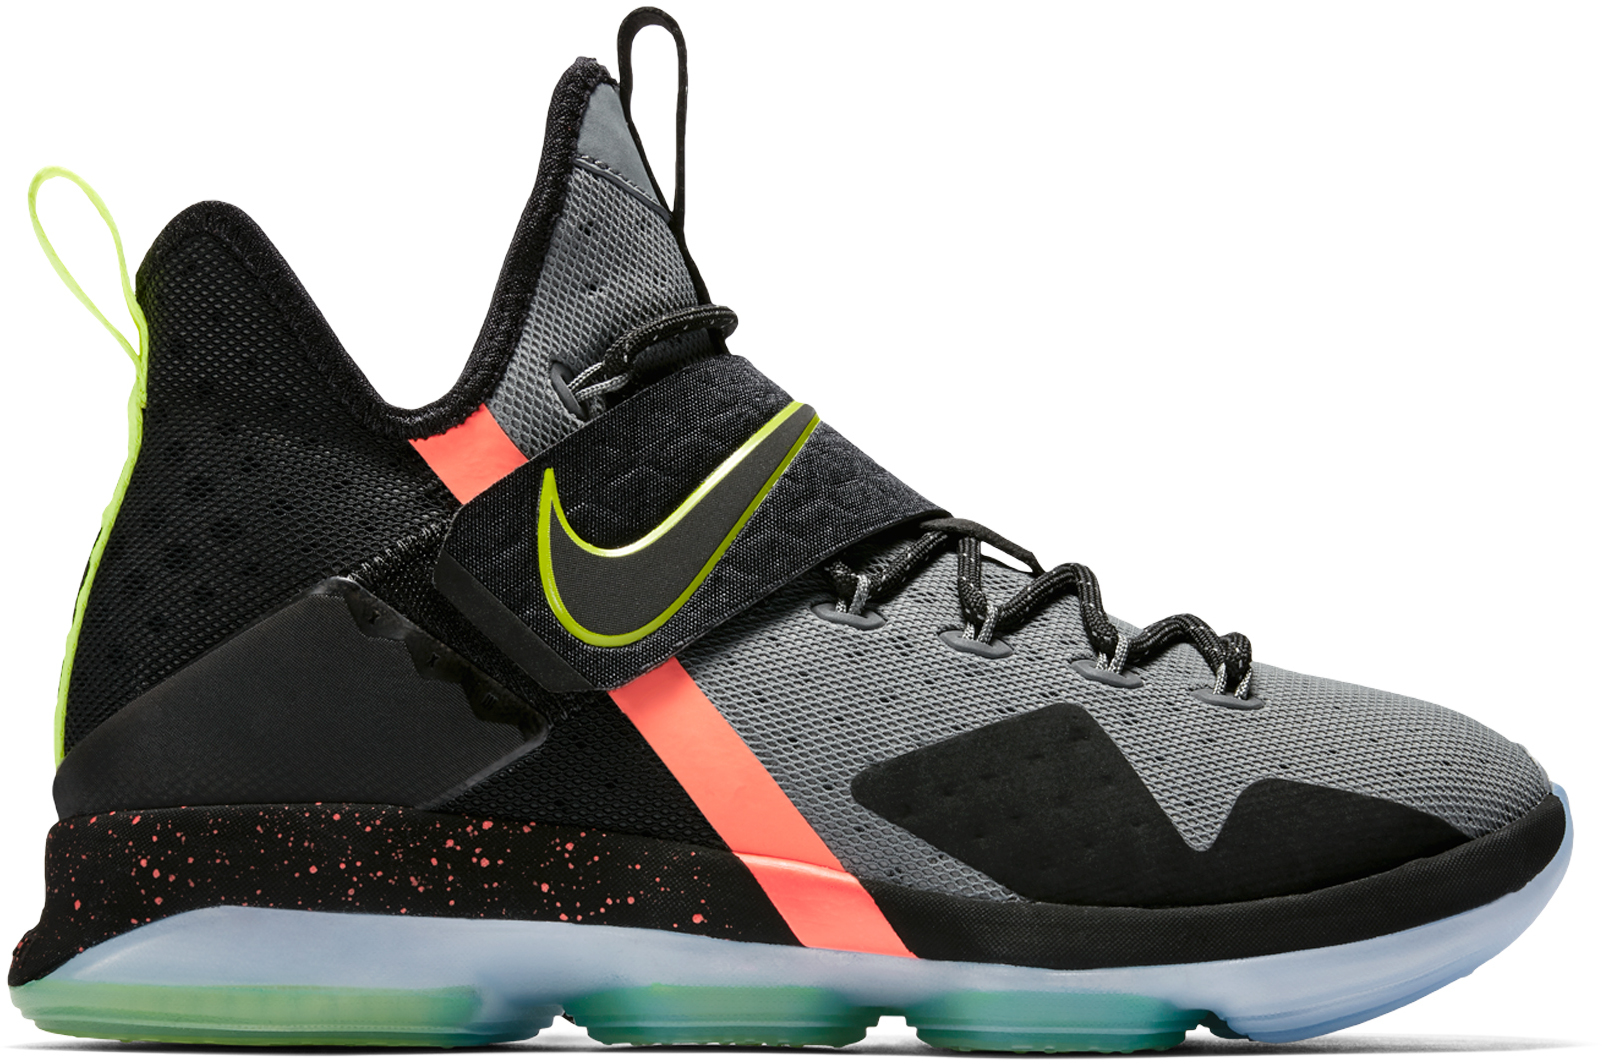 52c36bc78929d The wide-release edition kicks are all black and sort of look like if  Marvin the Martian wanted to do something covert and athletic in the dead  of night.